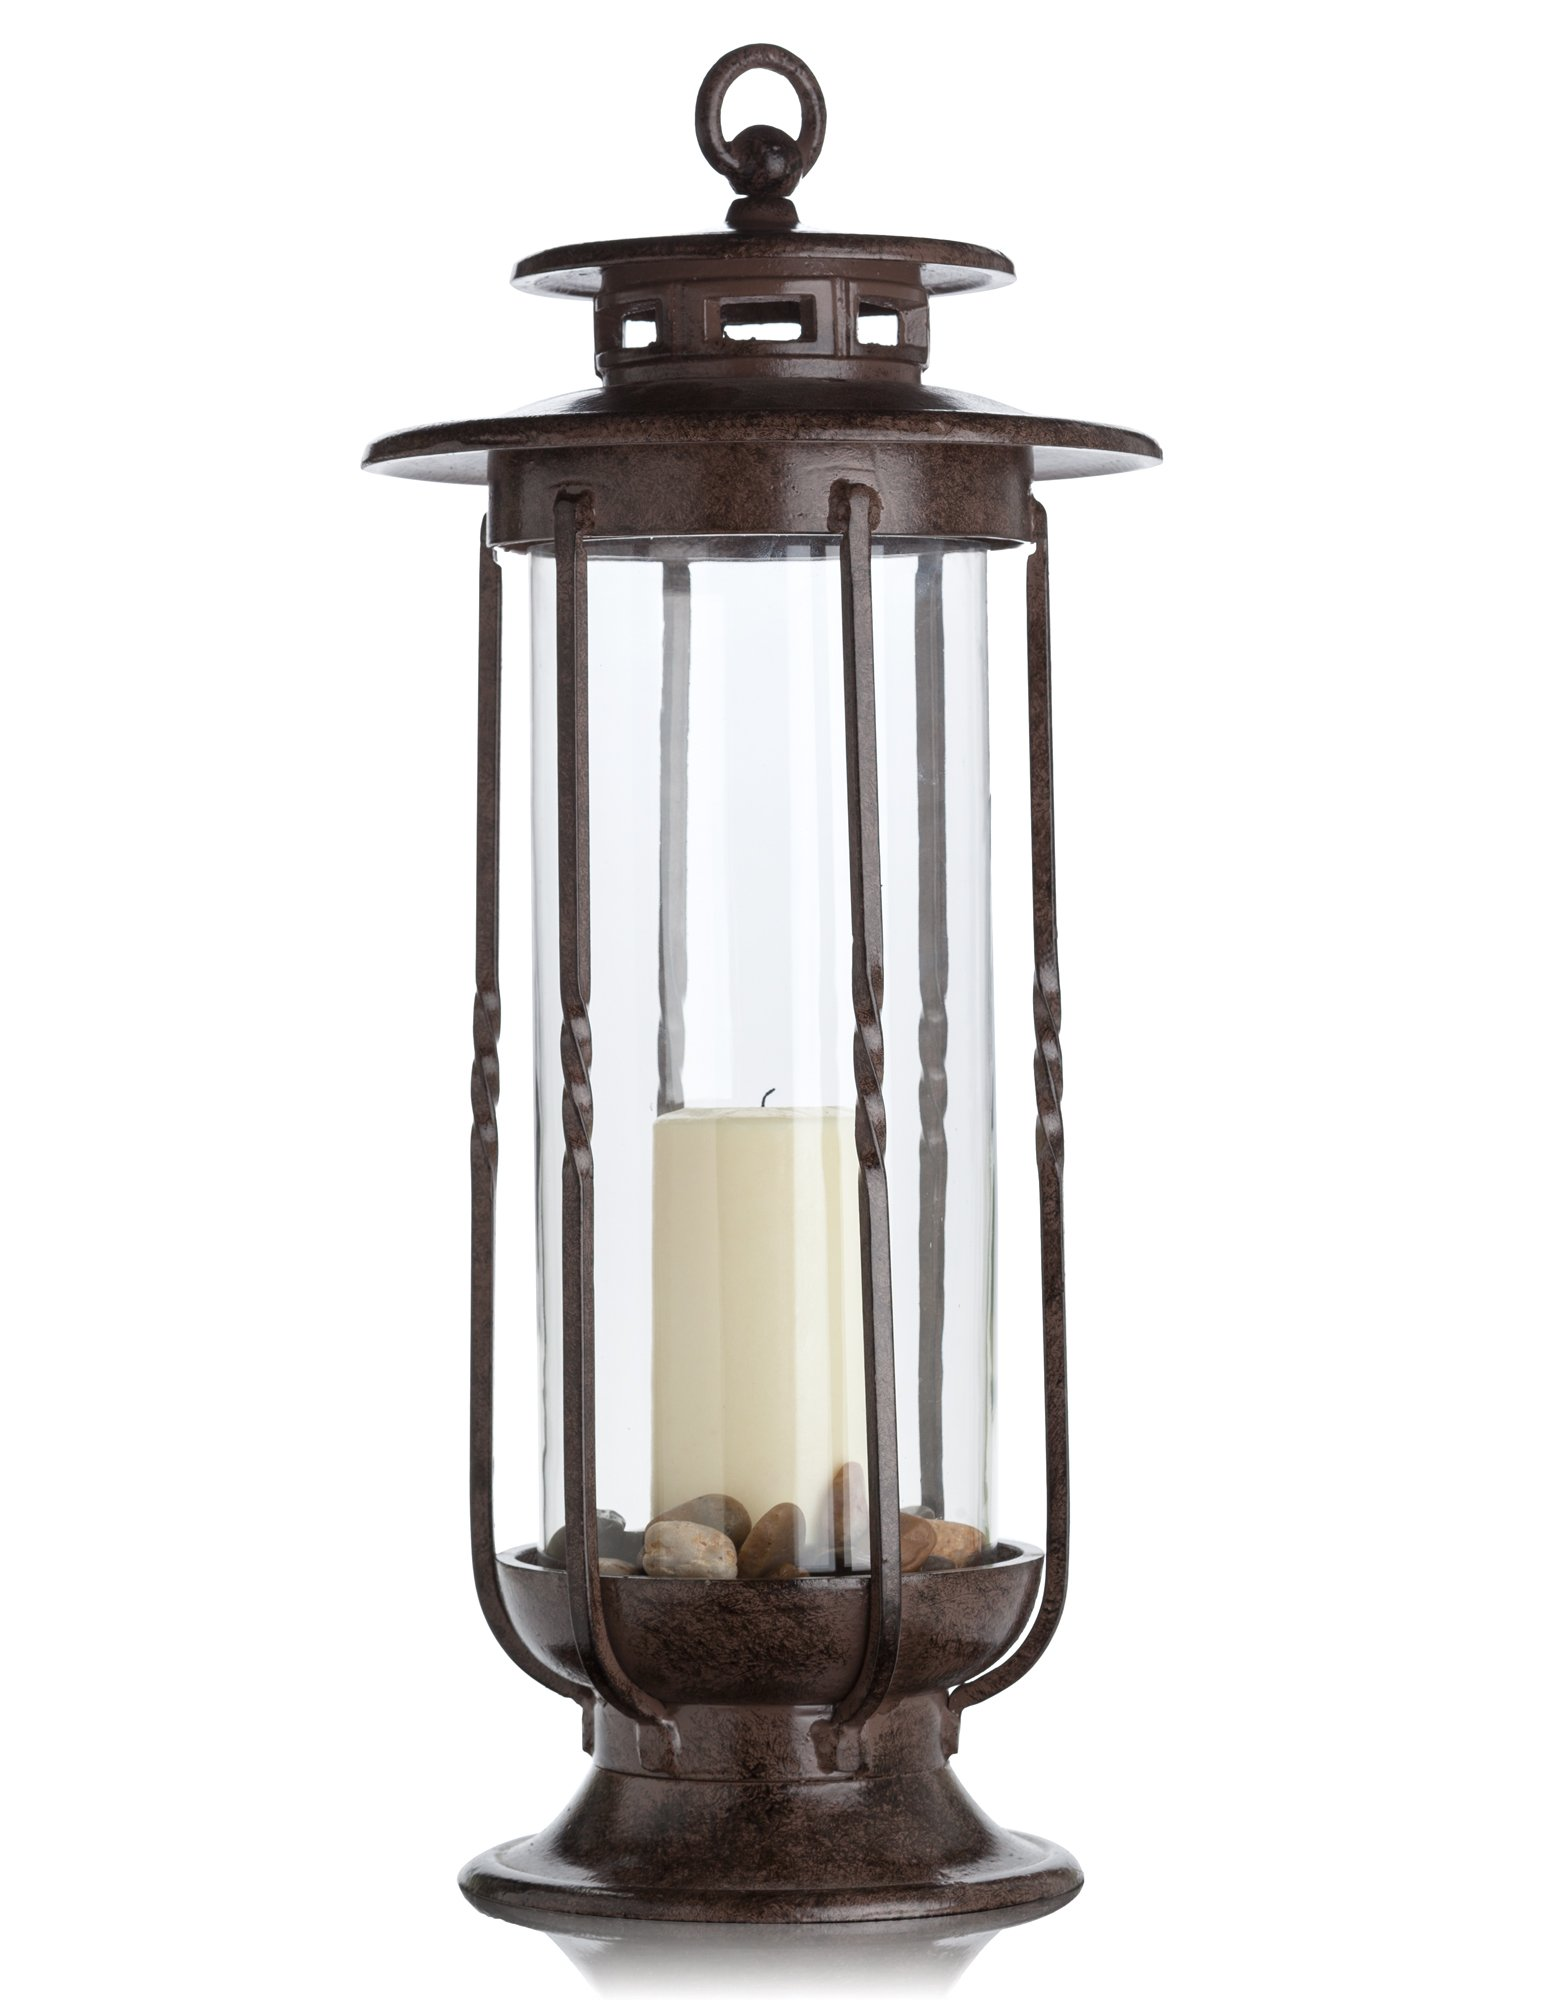 H Potter Large Decorative Hurricane Lantern Glass Candle Holder, Cast Iron, Rustic Indoor & Outdoor Light with Powder Coat Finish Centerpiece for Home, Wedding & Farmhouse Decor